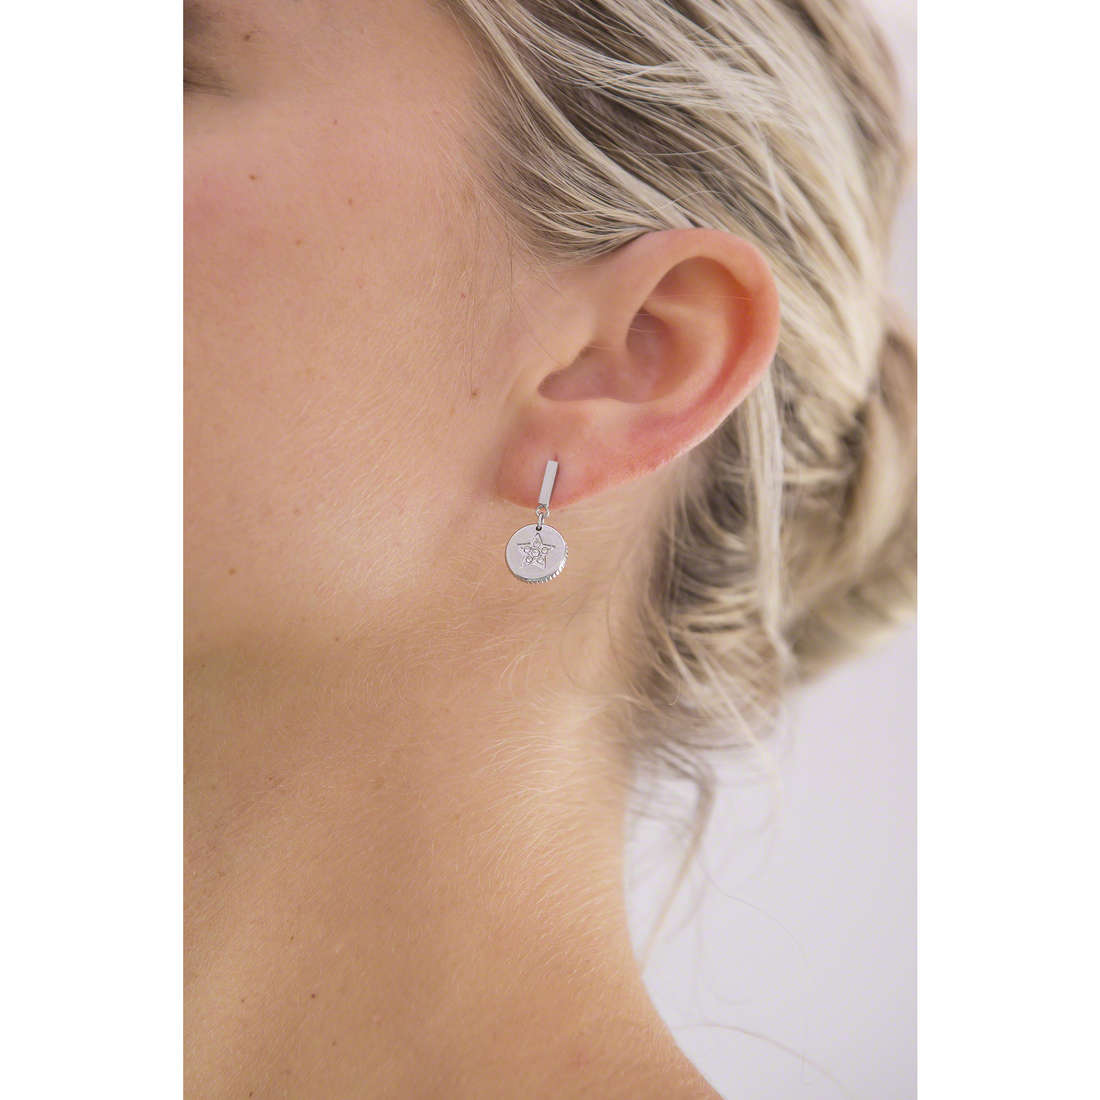 Morellato earrings Monetine woman SAHQ05 indosso